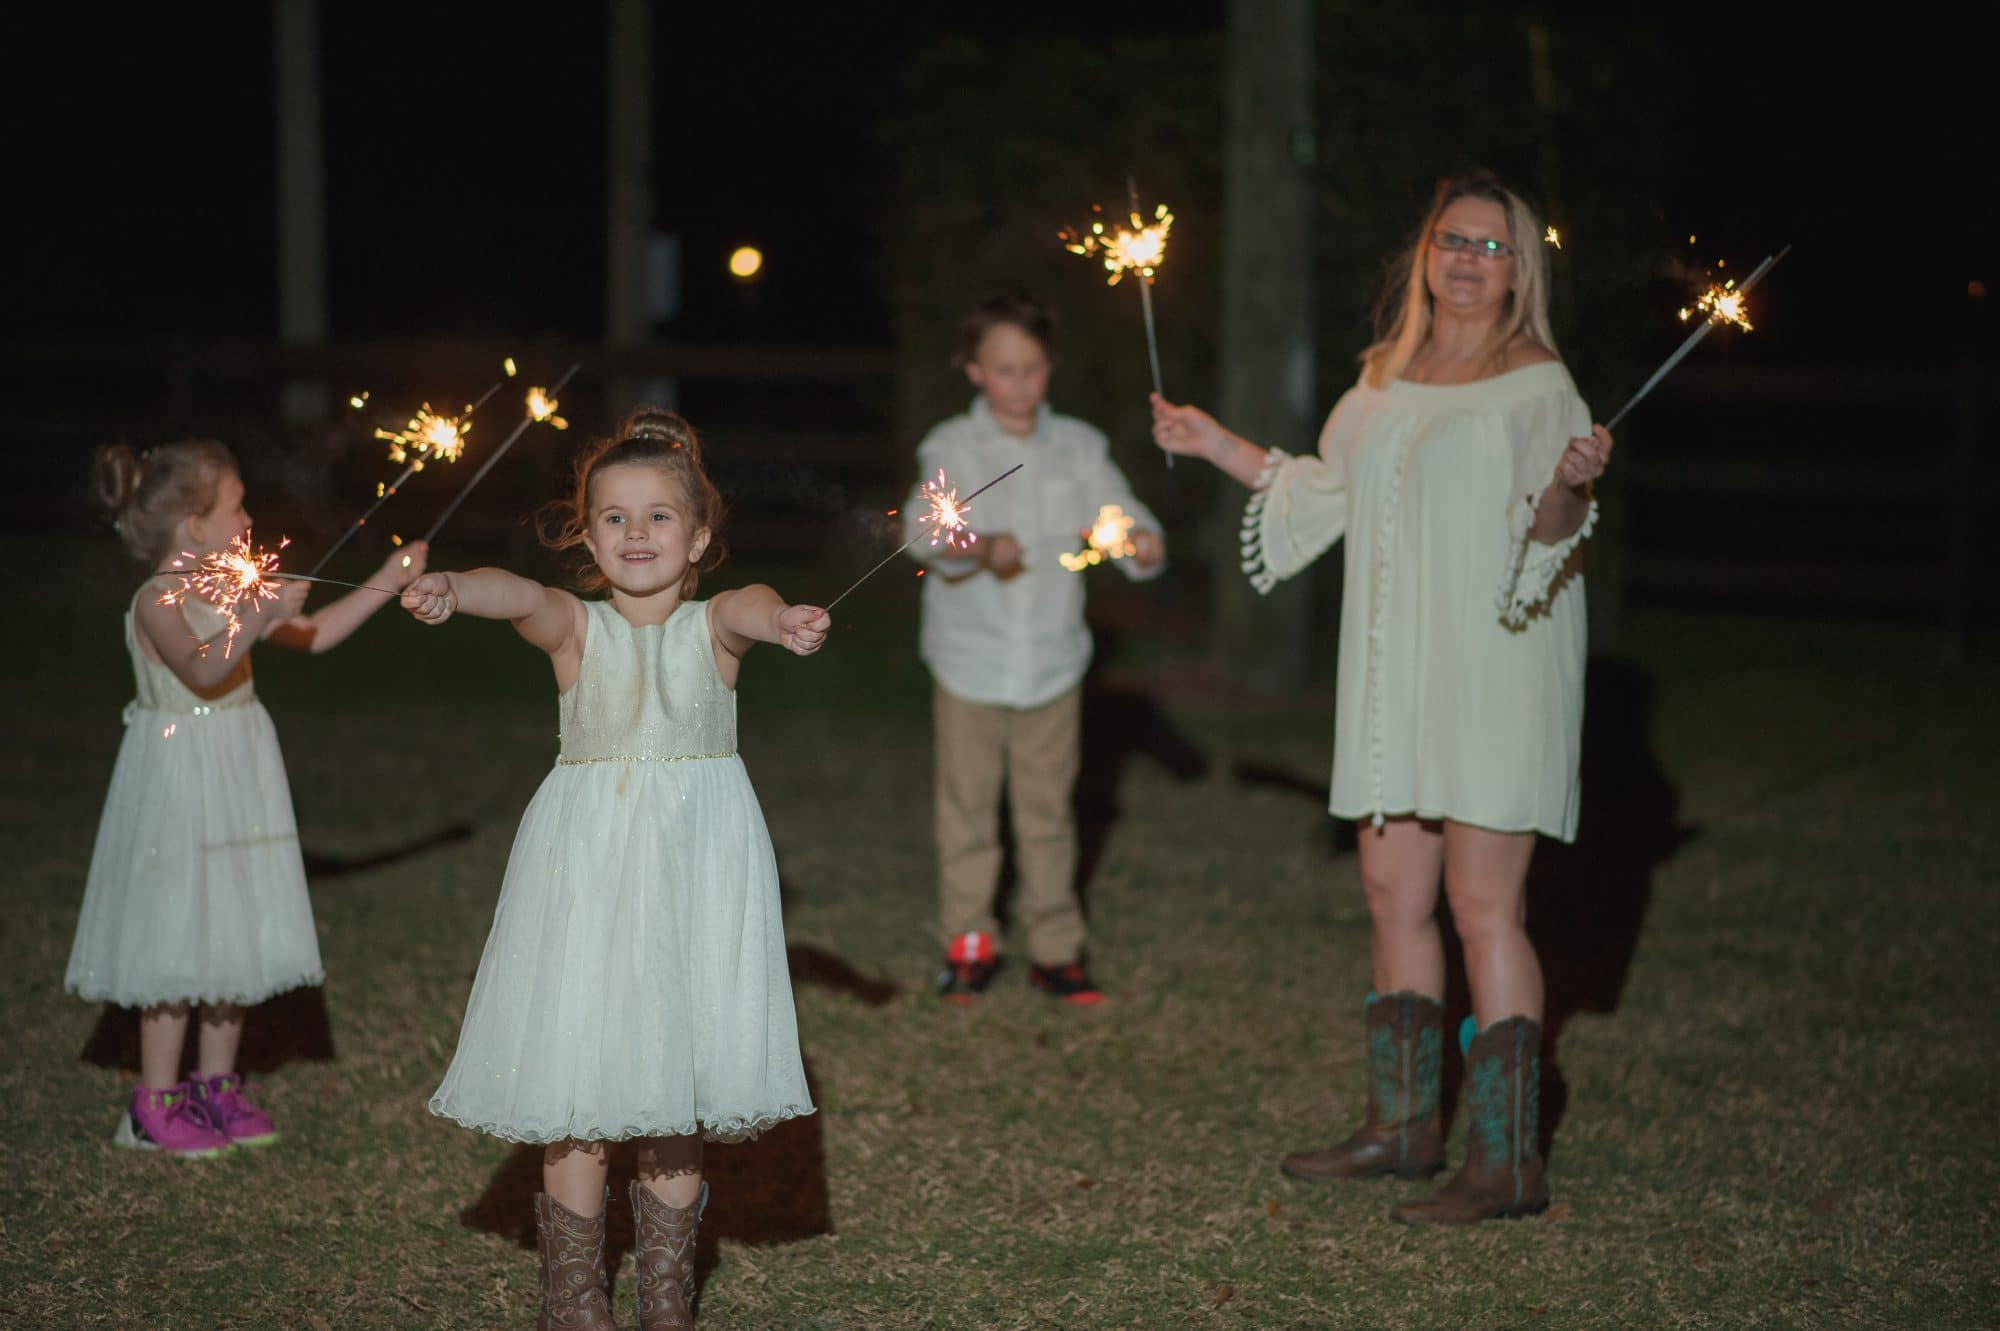 children with sparklers at the end of the night.